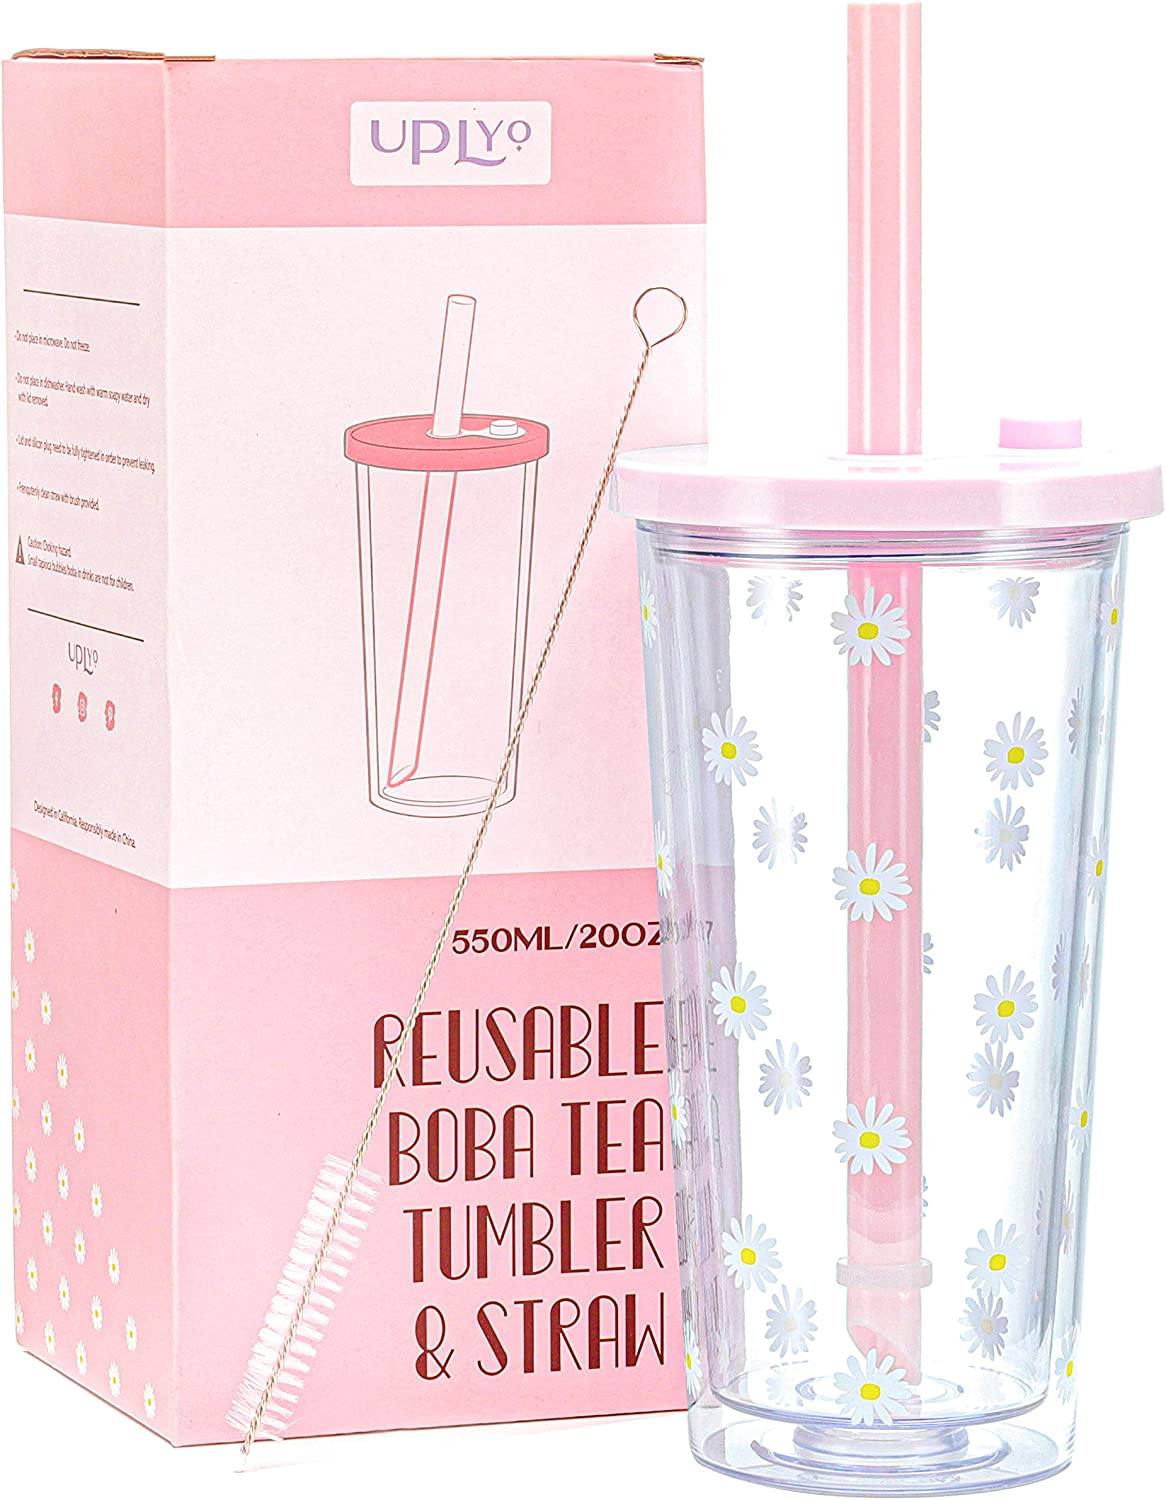 Reusable Boba Cup Smoothie Cup with Resealable Lid Plug - 550 ml/20 oz Double Wall Insulated Boba Tea Cup Boba Tumbler Milk Tea Cup with Wide Reusable Straw